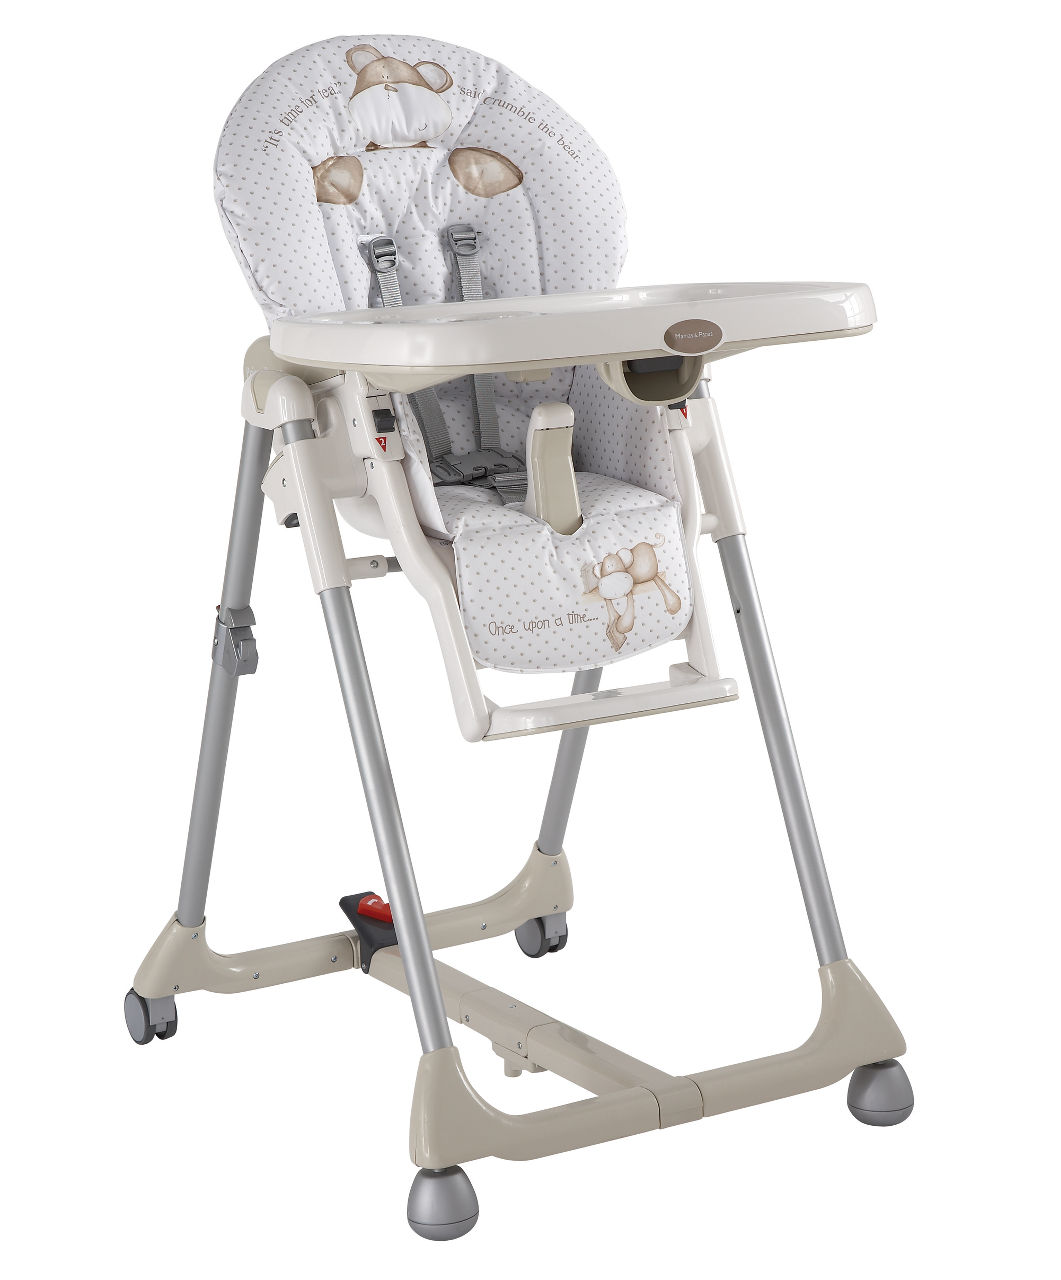 high chair cover replacement mamas and papas heated lumbar support for office prima pappa highchair once upon a time view all baby highchairs is this your first heart